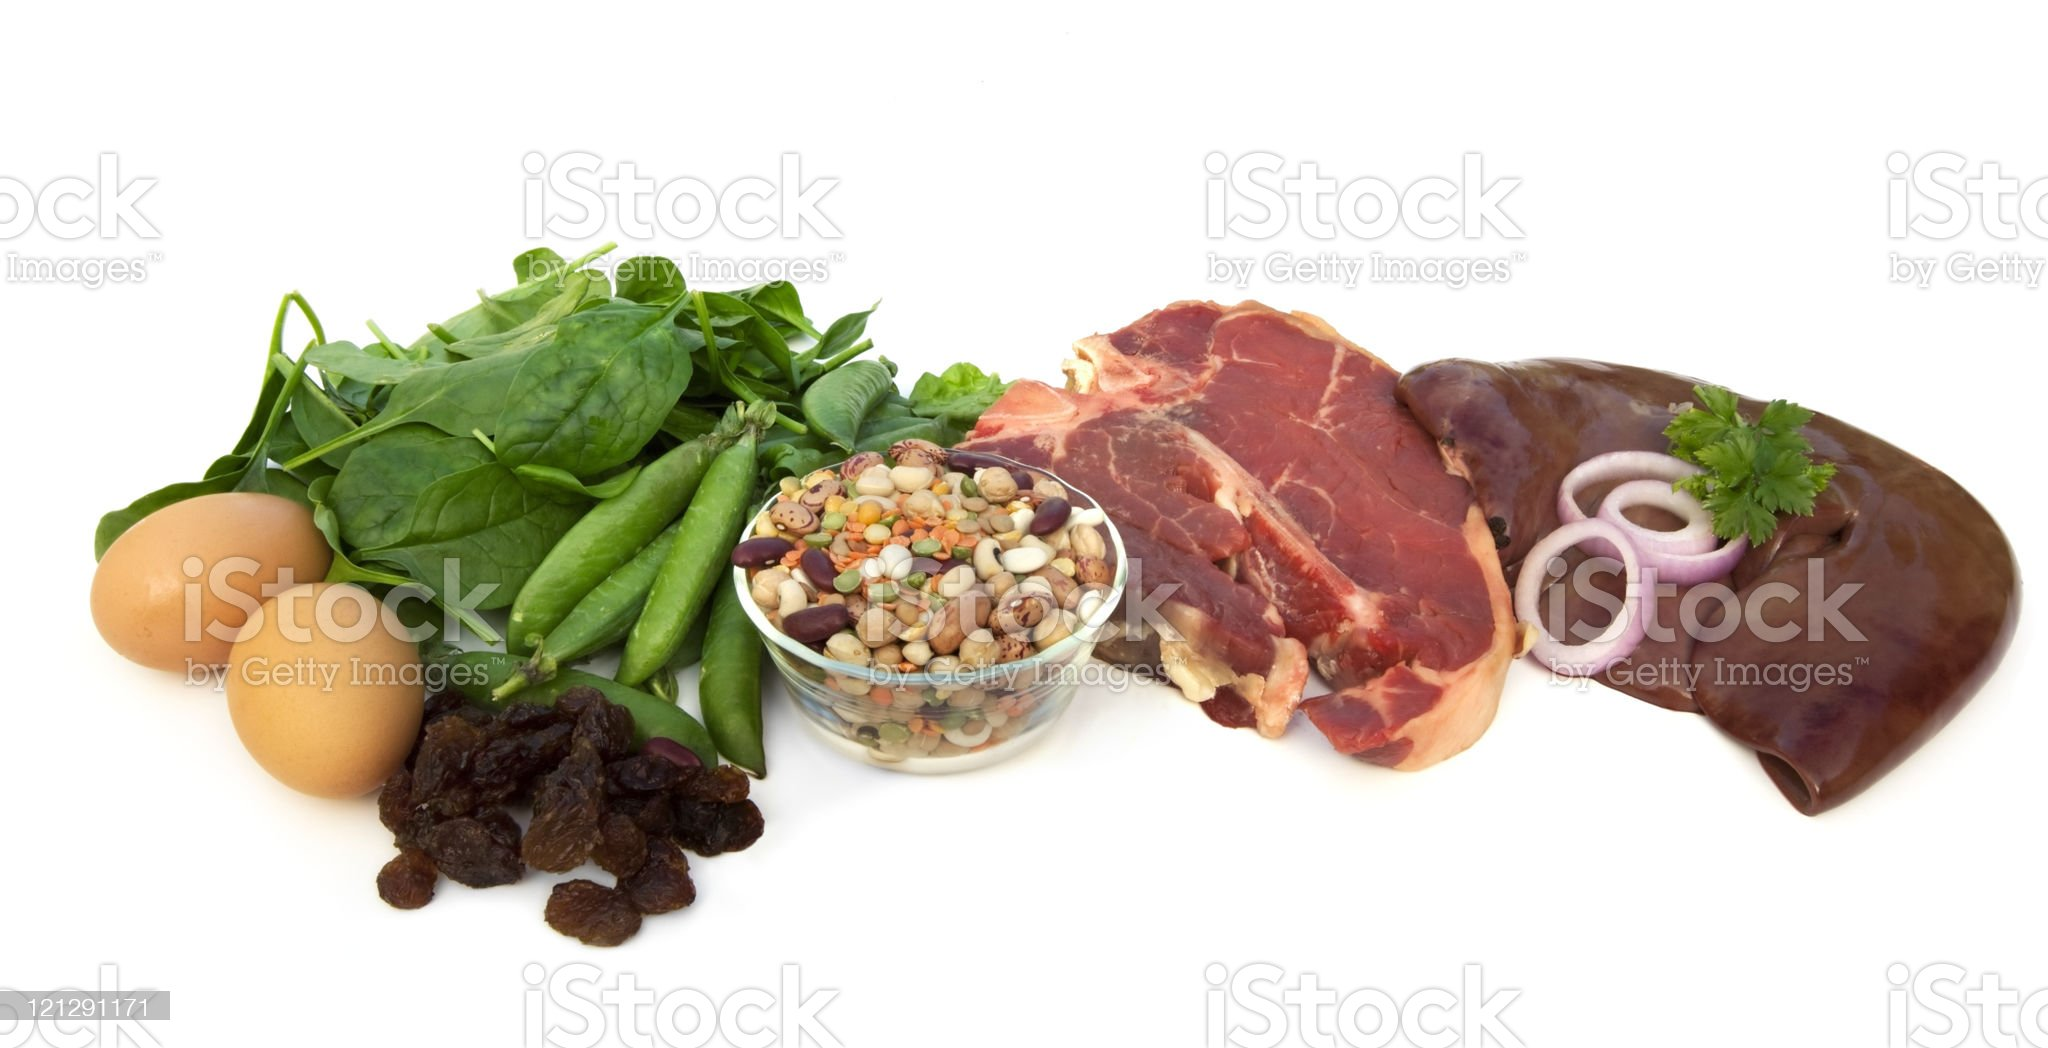 Food Sources of Iron royalty-free stock photo